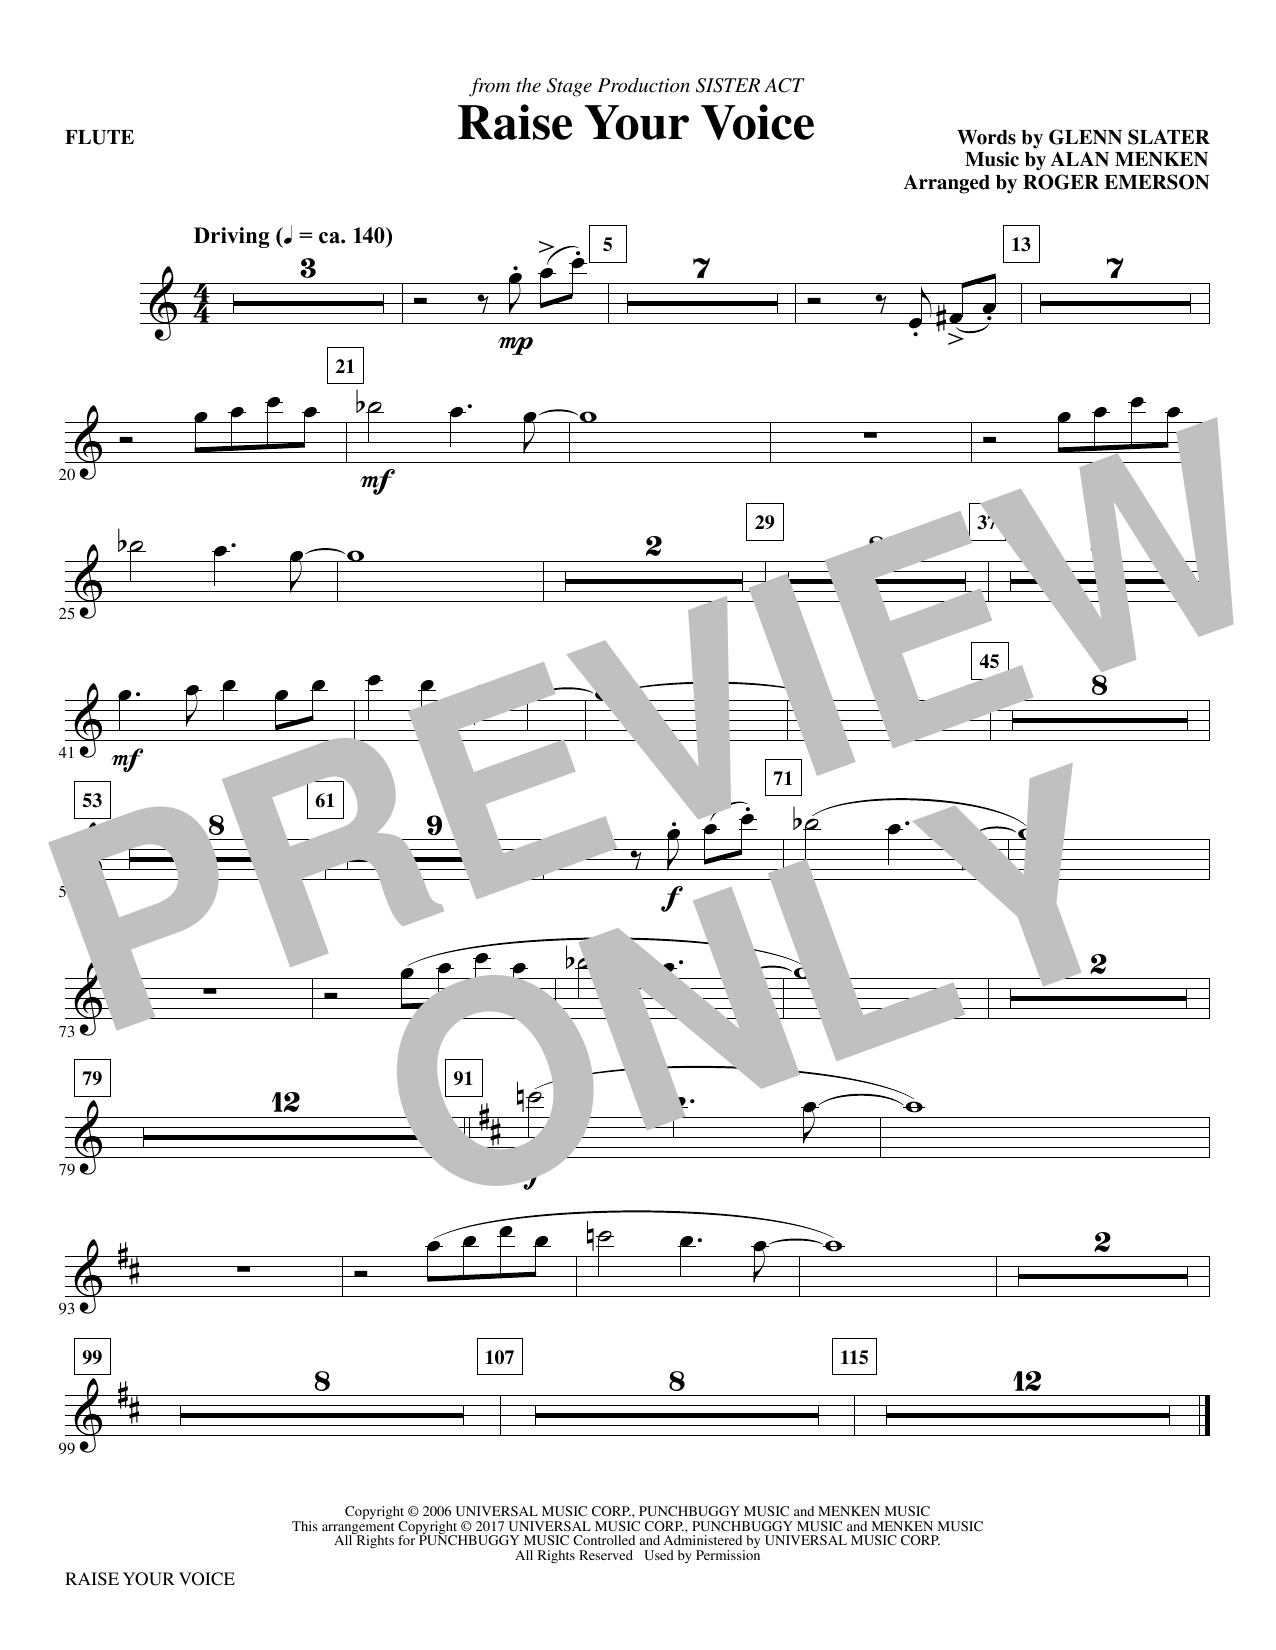 Raise Your Voice (complete set of parts) sheet music for orchestra/band by Roger Emerson, Alan Menken and Glenn Slater. Score Image Preview.